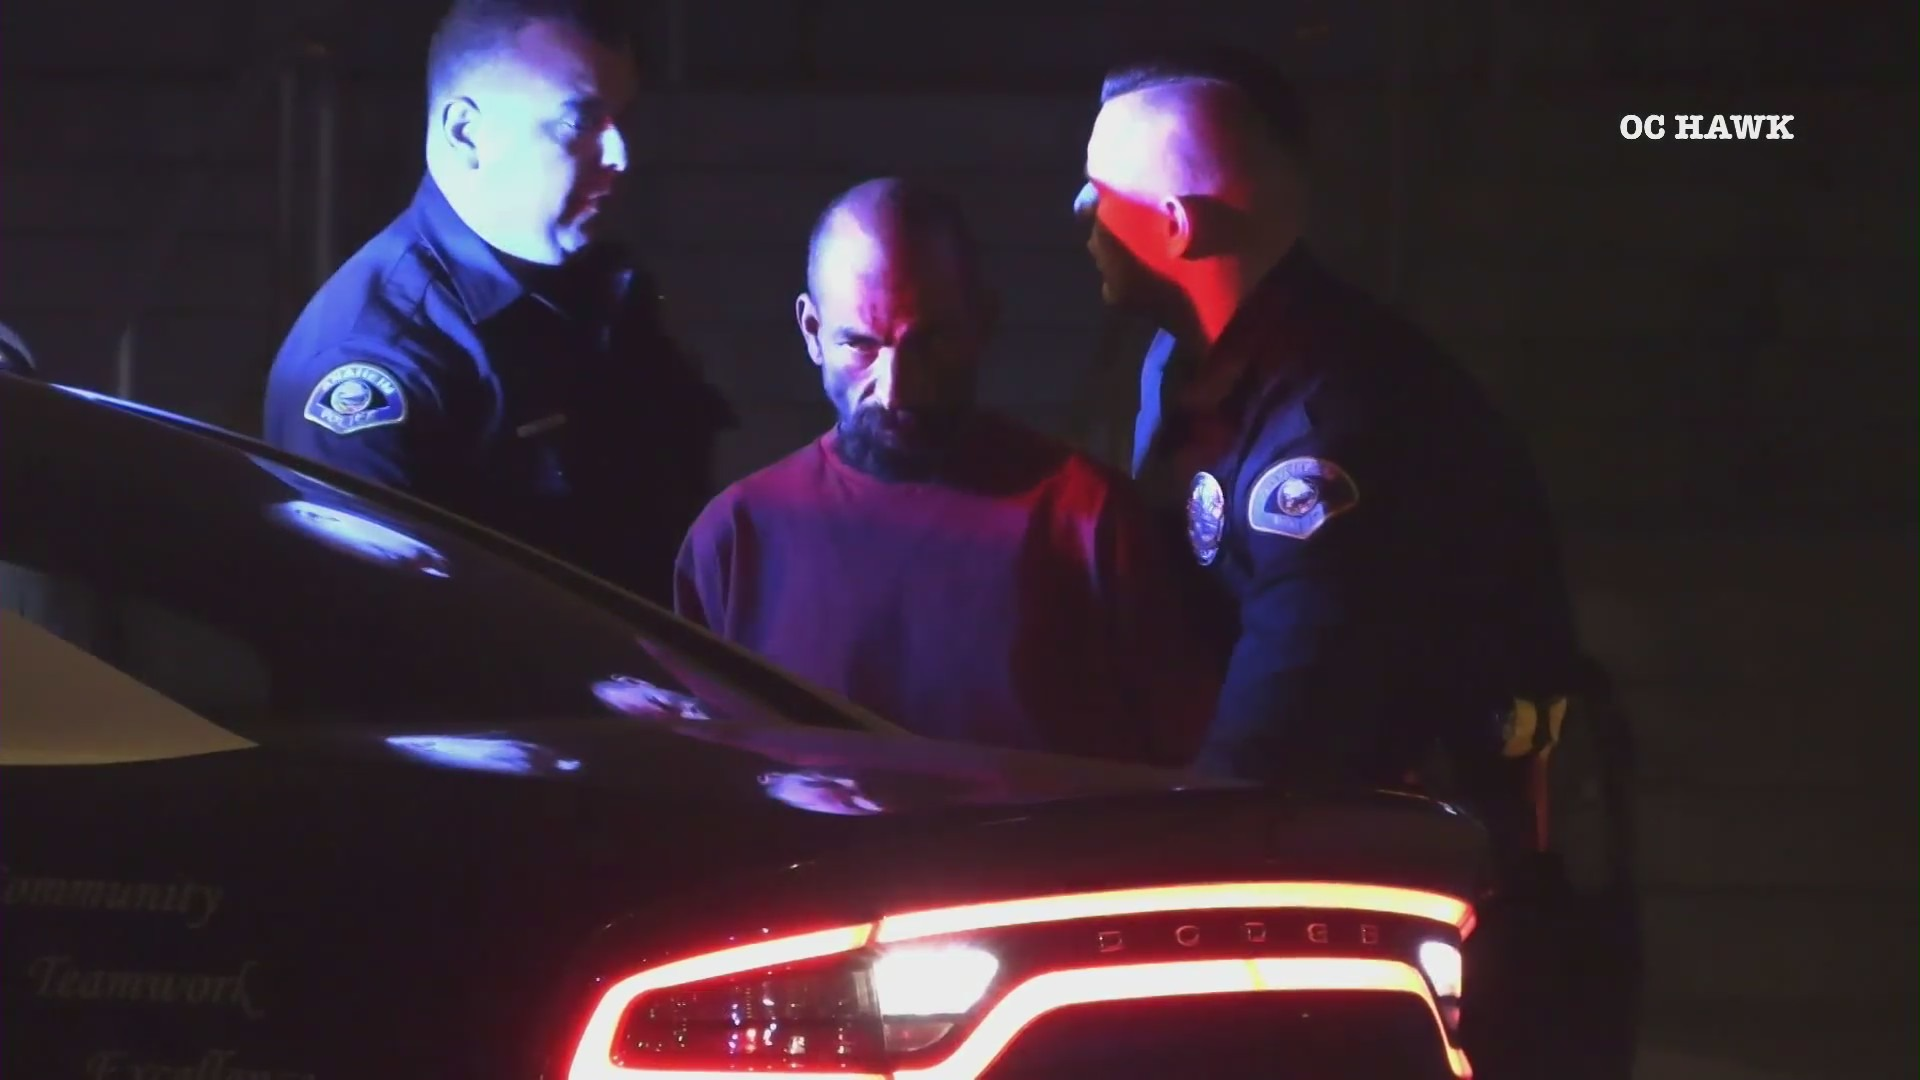 A man is taken into custody following a fatal stabbing in Anaheim on Feb. 25, 2021. (OCHawk).